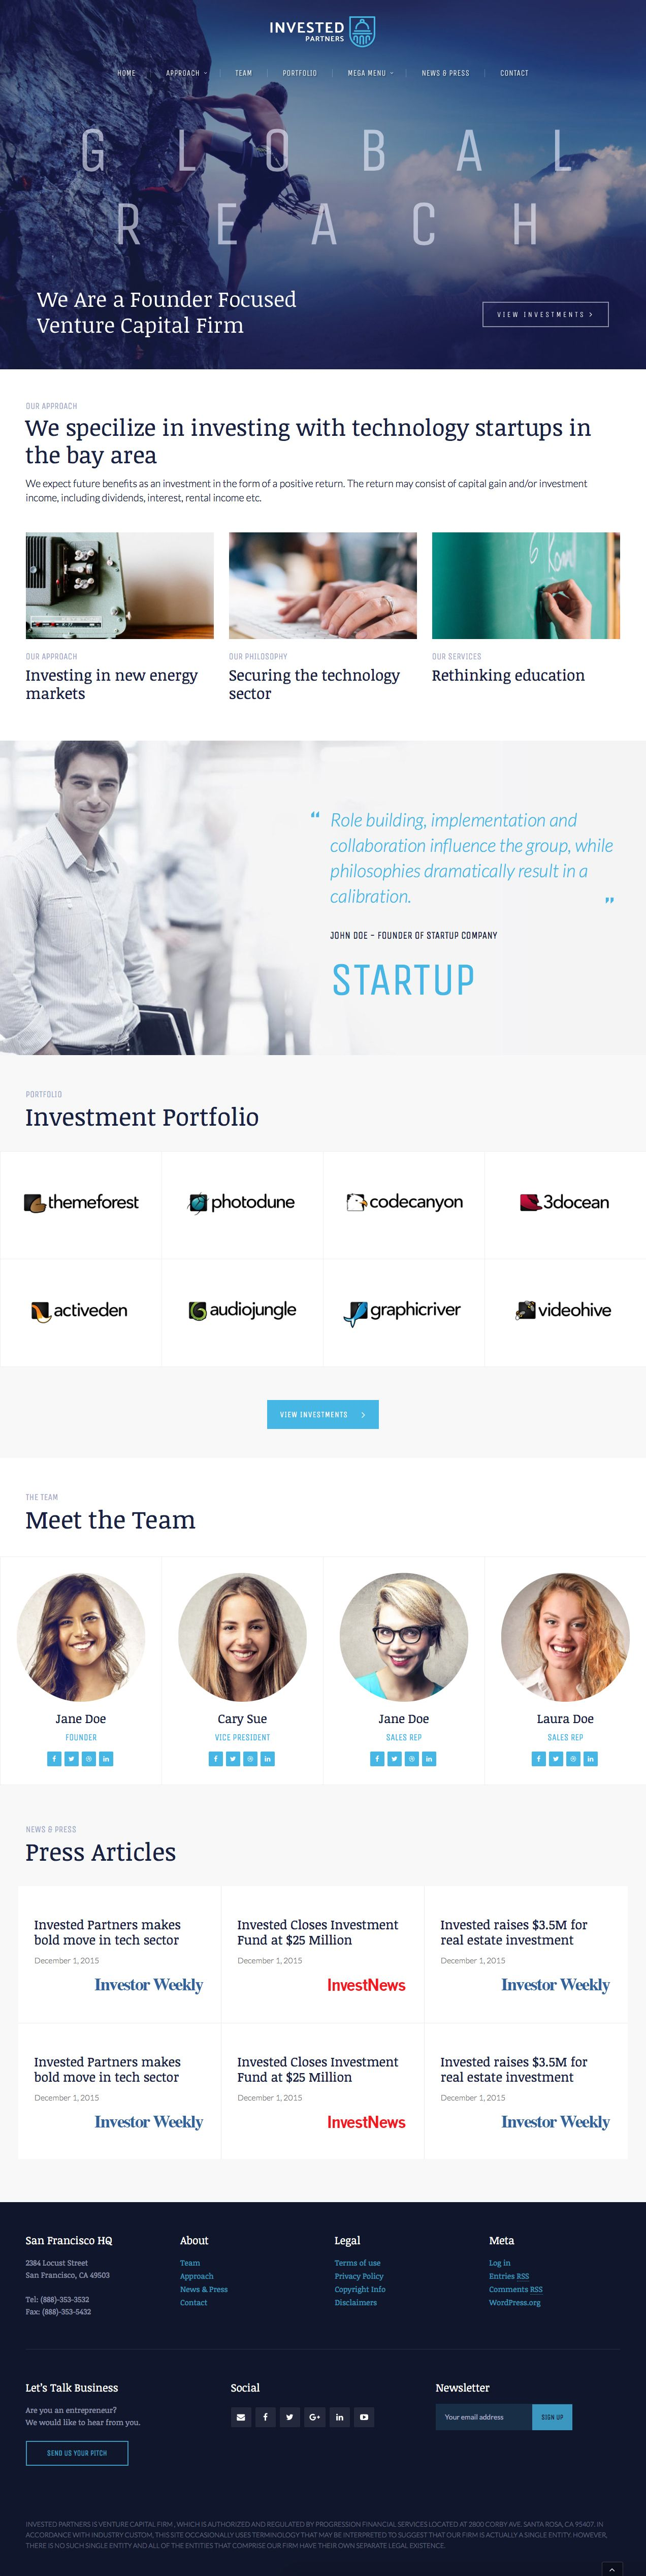 Invested Venture Capital Investment Theme Venture Capital Capital Investment Investing